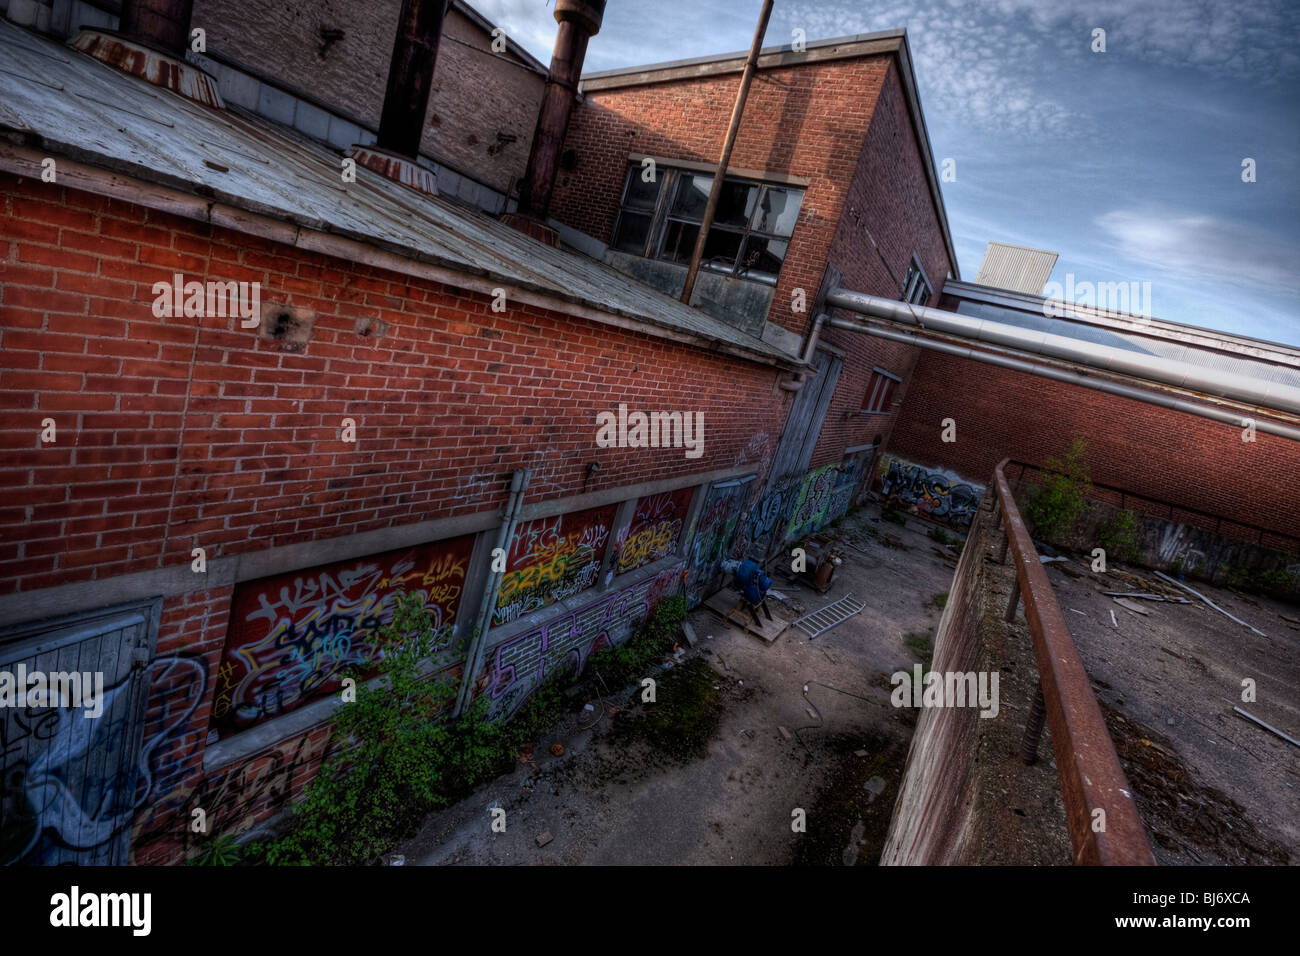 Abandoned warehouse - Stock Image